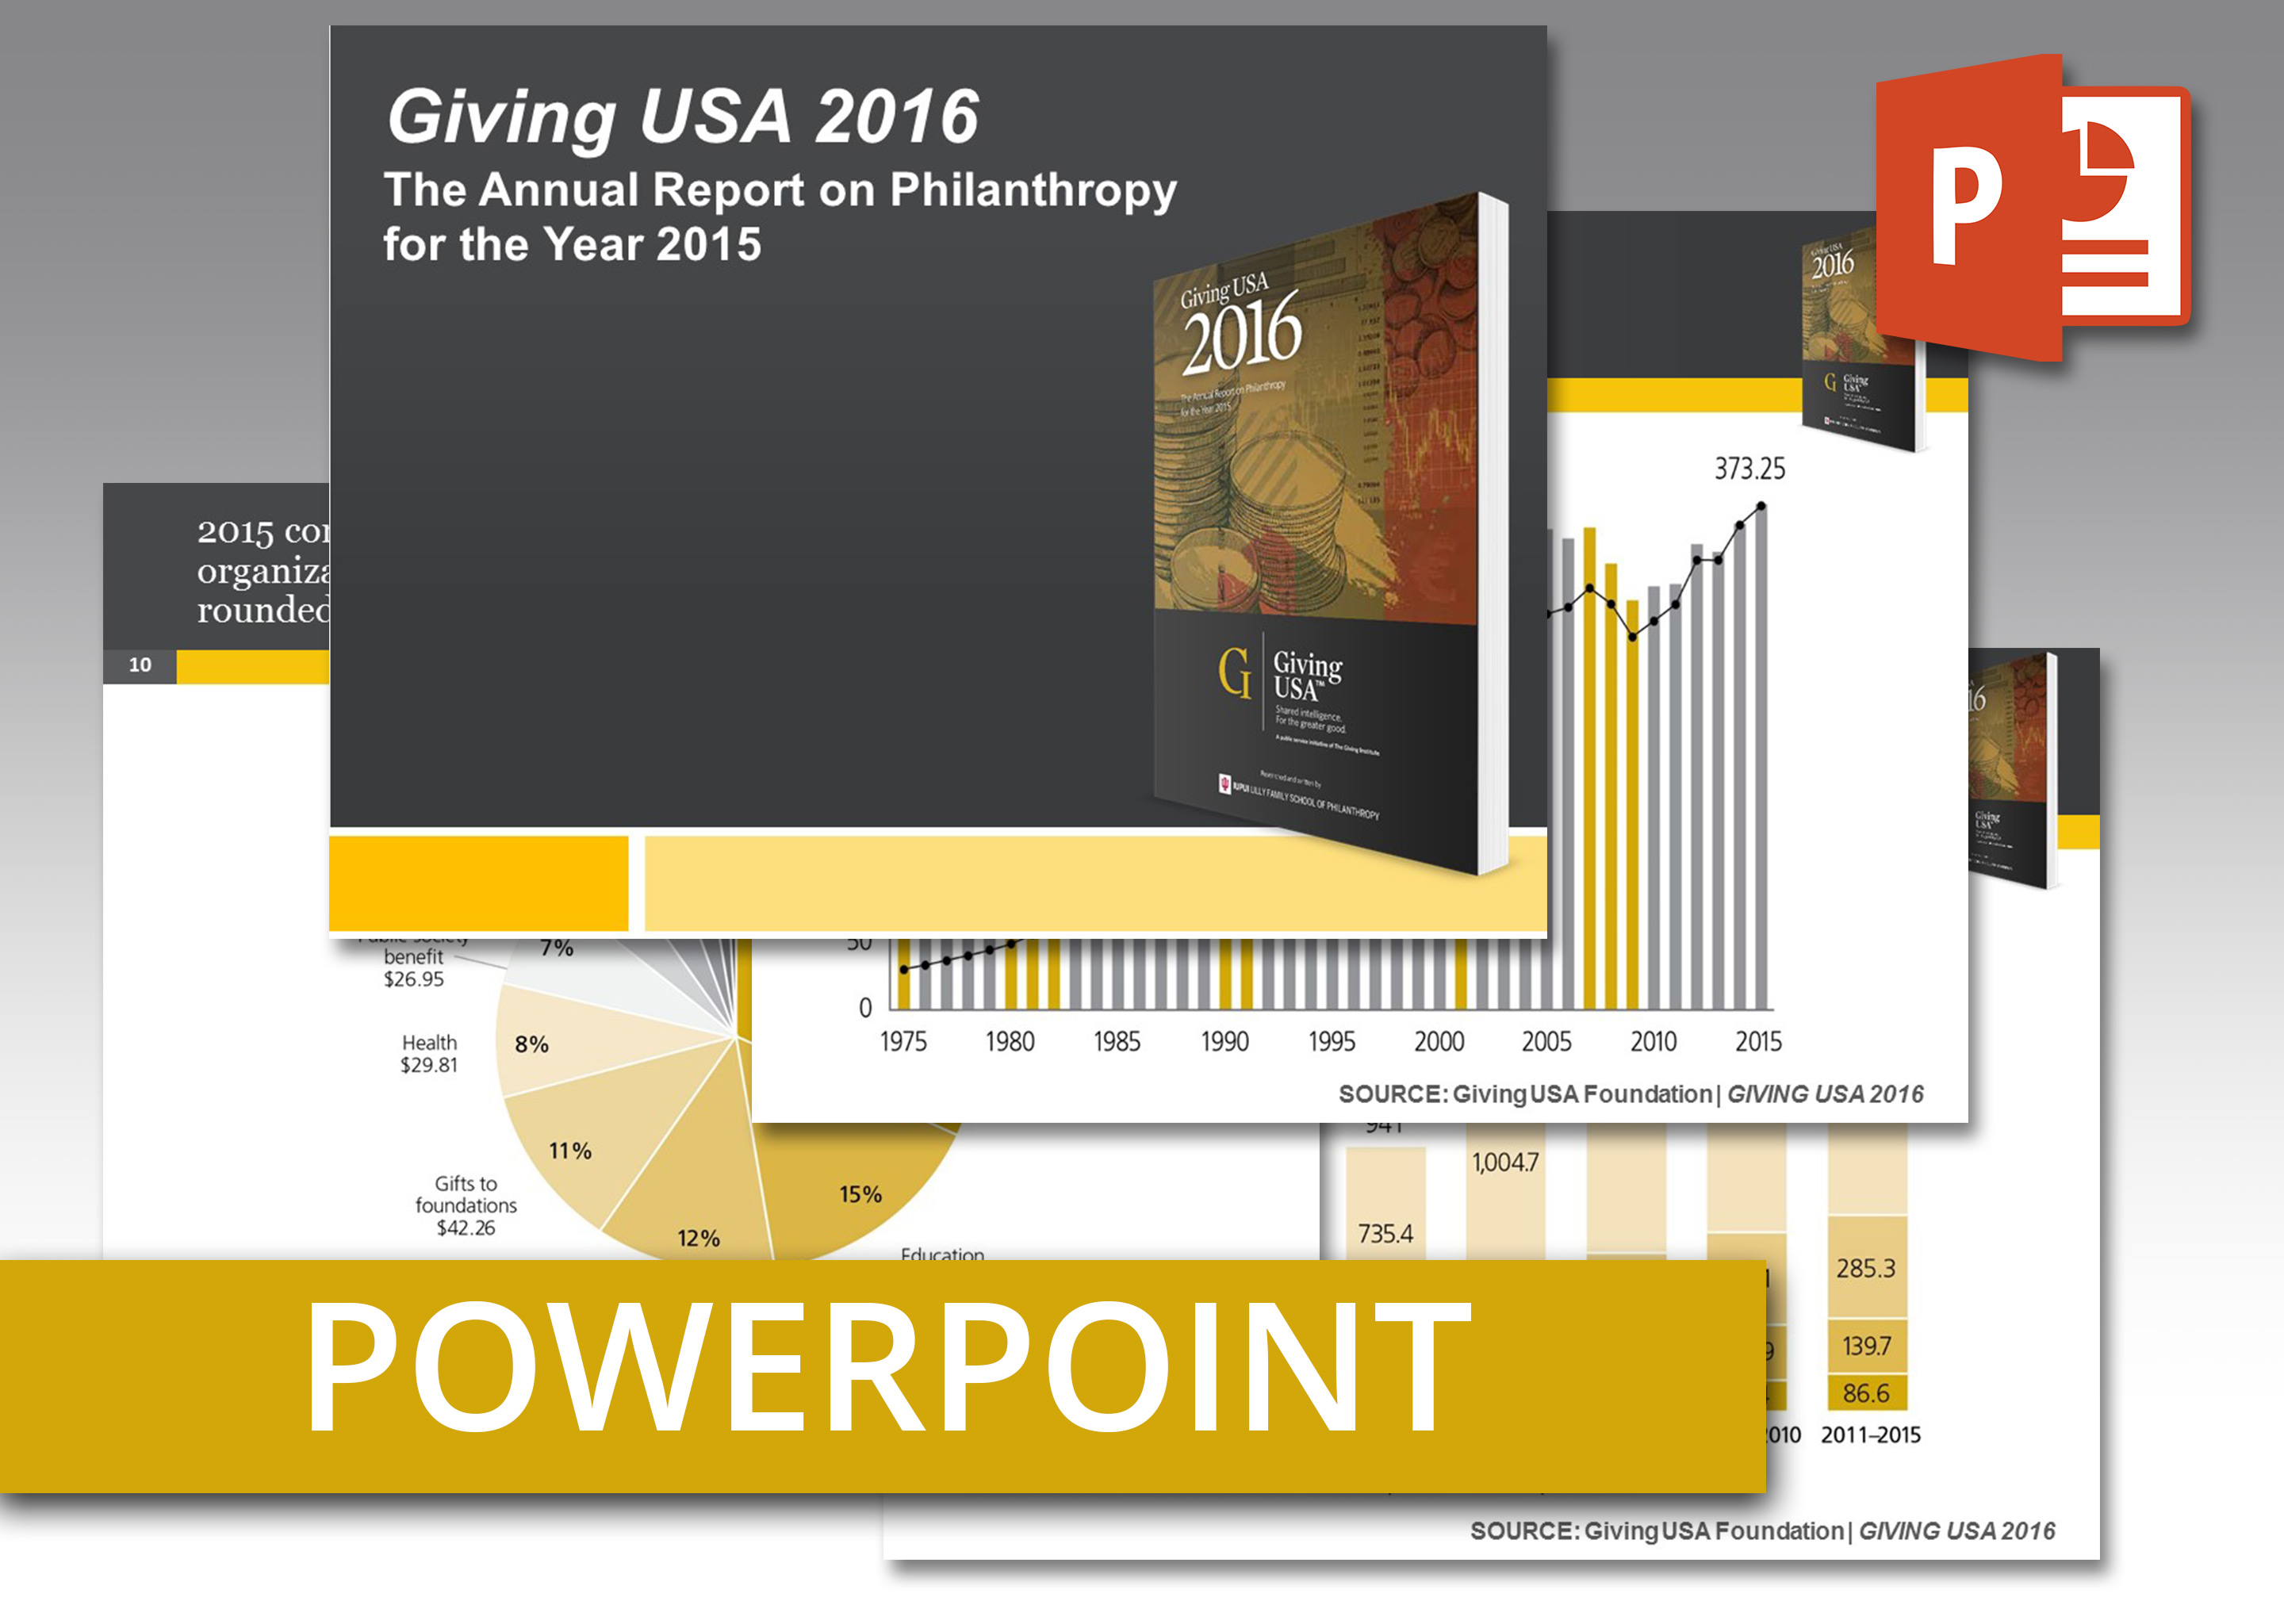 Coolmathgamesus  Stunning Giving Usa  Powerpoint An Easytouse Presentation Of Report  With Inspiring Giving Usa  Powerpoint An Easytouse Presentation Of Report Findings Including Talking Points With Lovely Is Powerpoint Online Free Also Grammar Powerpoints In Addition Powerpoint With Pictures And Company Powerpoint As Well As Powerpoint Presentation Companies Additionally Powerpoint Templates Nature From Givingusaorg With Coolmathgamesus  Inspiring Giving Usa  Powerpoint An Easytouse Presentation Of Report  With Lovely Giving Usa  Powerpoint An Easytouse Presentation Of Report Findings Including Talking Points And Stunning Is Powerpoint Online Free Also Grammar Powerpoints In Addition Powerpoint With Pictures From Givingusaorg